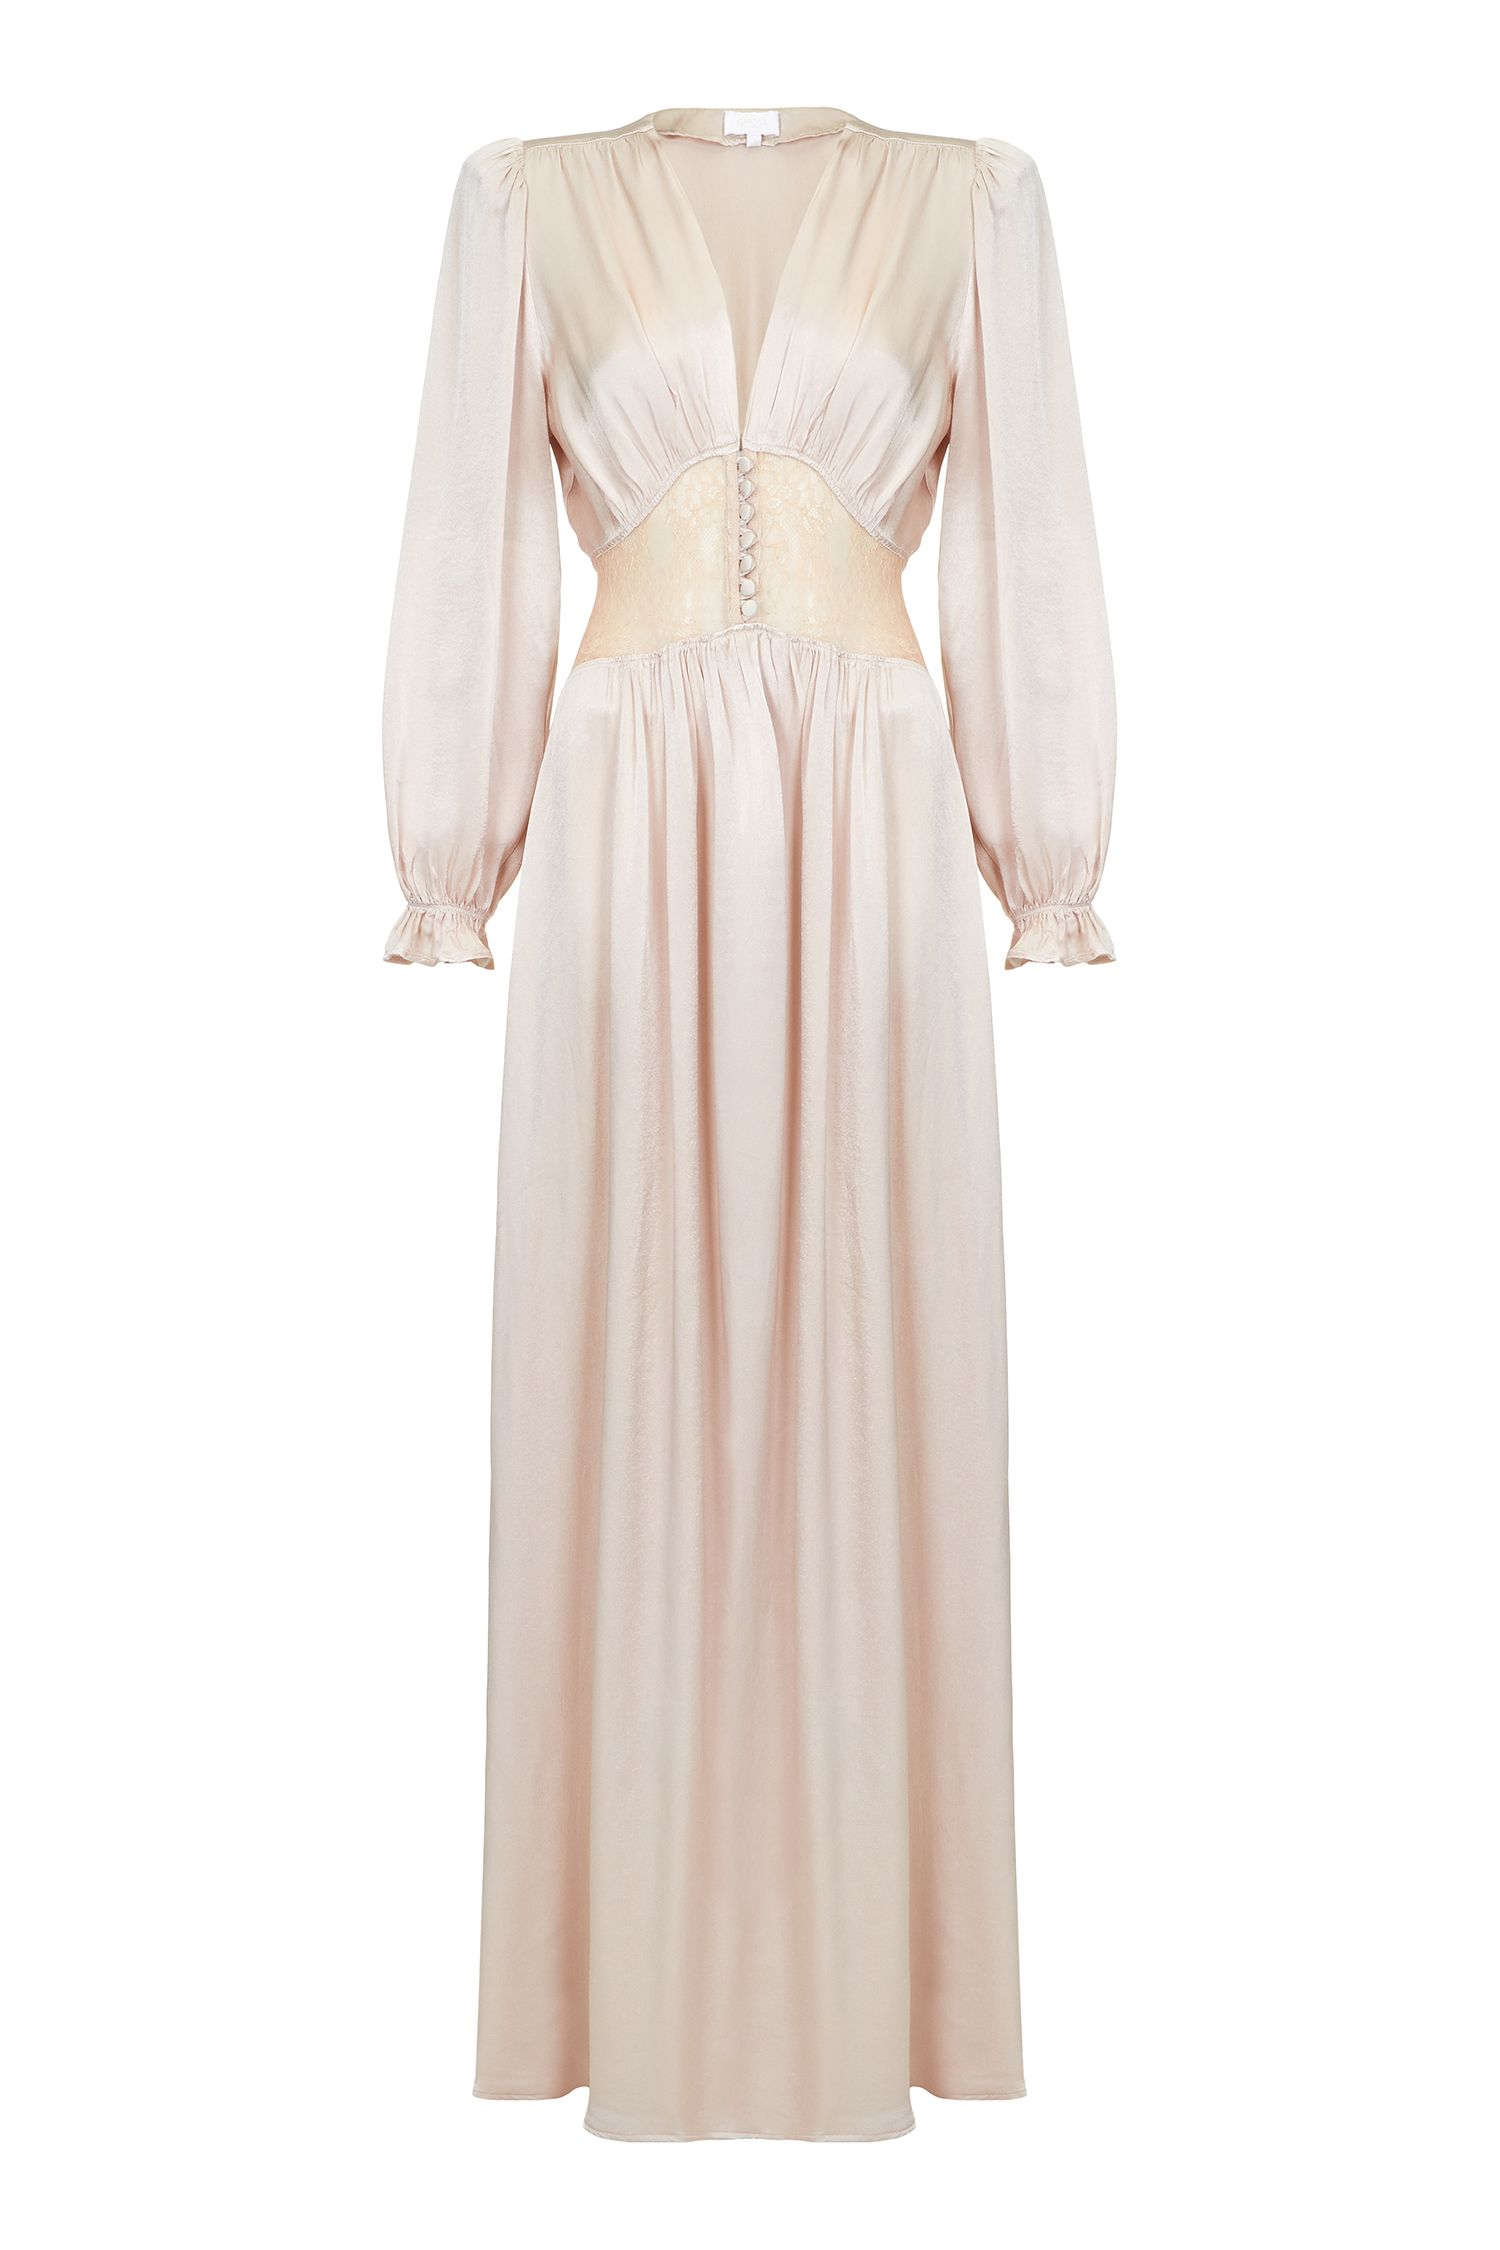 1940s Style Prom, Party, Cocktail Dresses Ghost Farah Dress Nude £345.00 AT vintagedancer.com